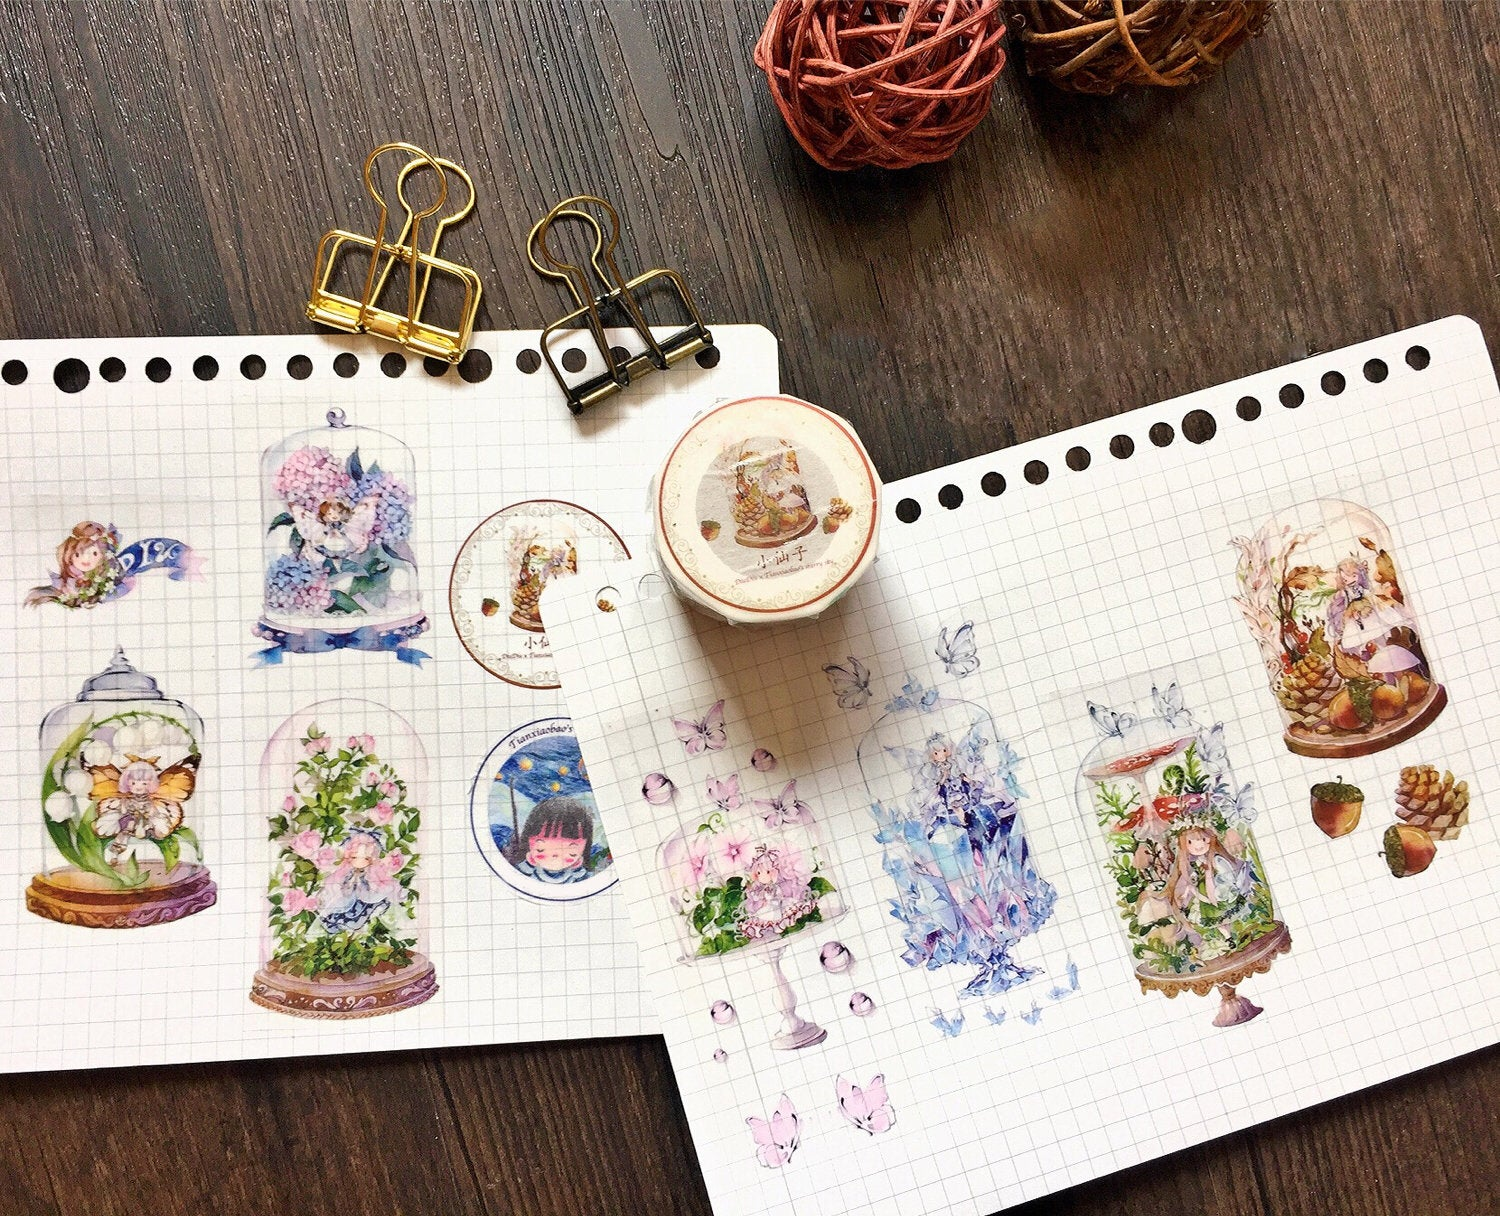 Fairy Bottles Washi Tape, Fairy, Crystal, Girls Illustration Washi Tape Roll, Floral, Nature, Plants Masking Tape, Deco Tape